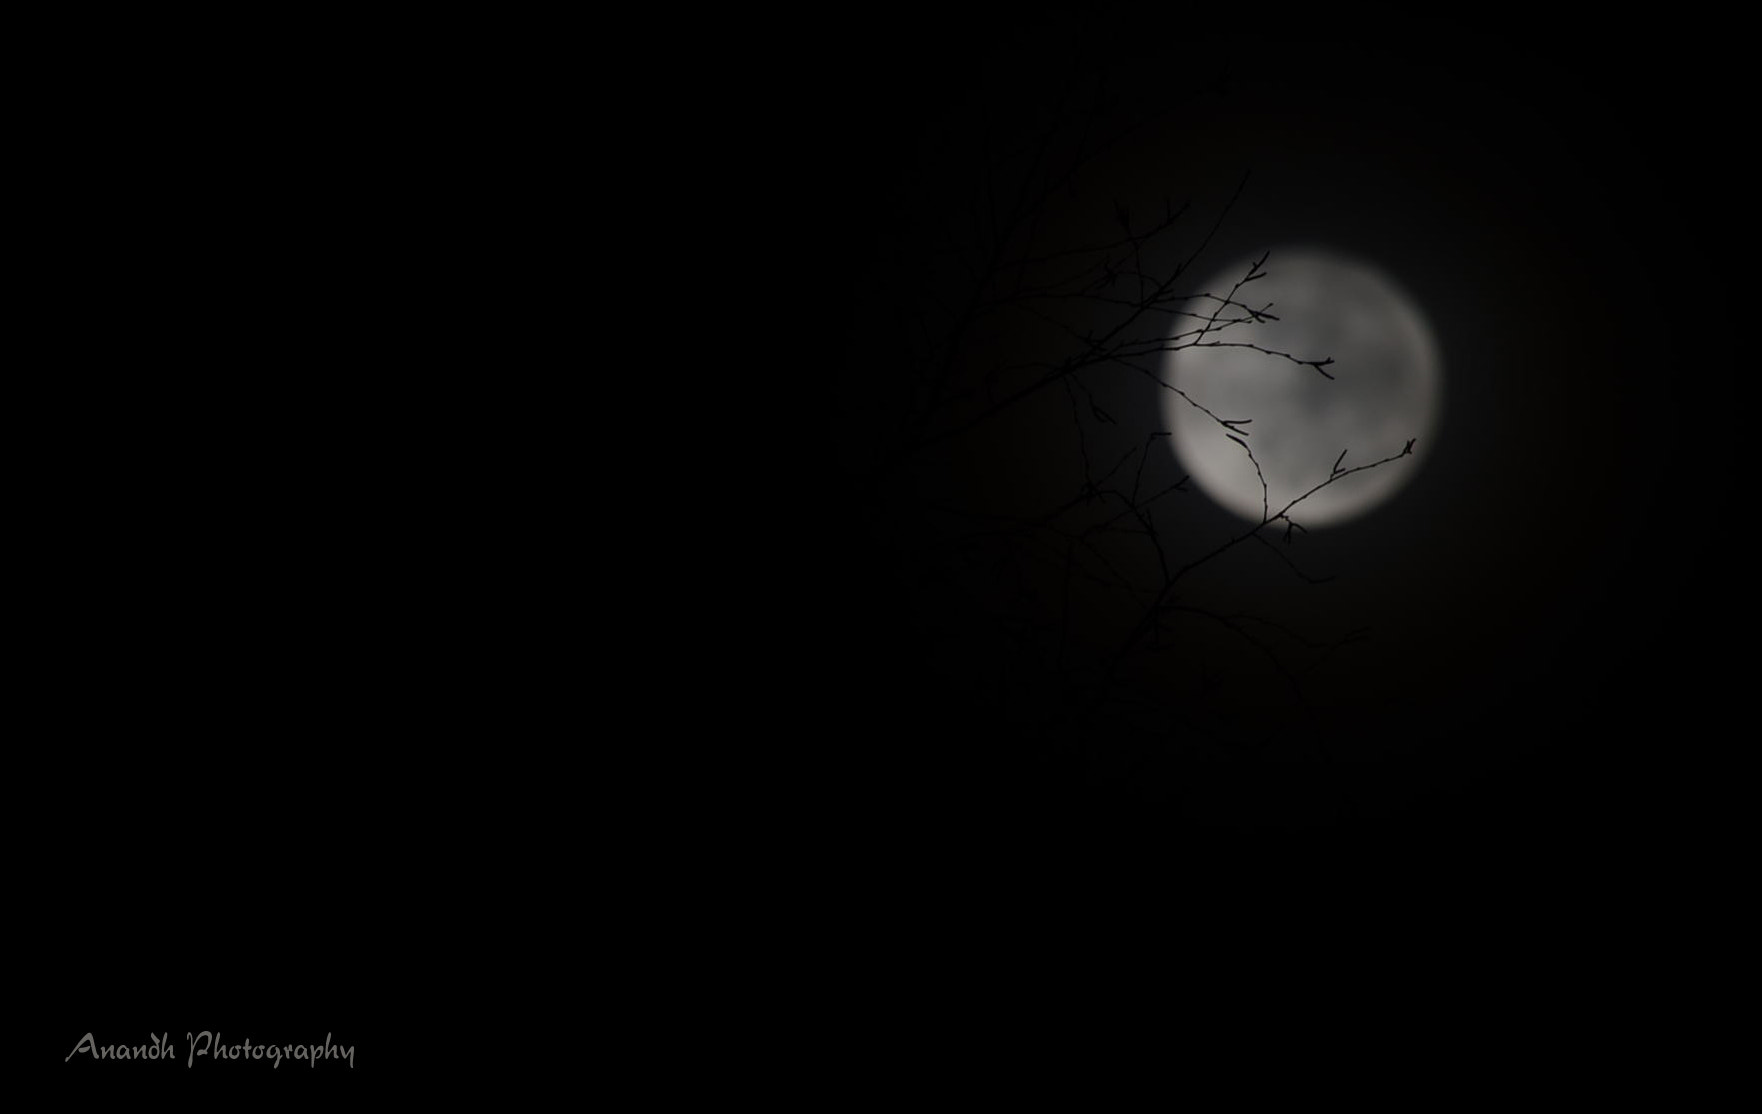 Photograph Moon by Anandh Manoharan on 500px